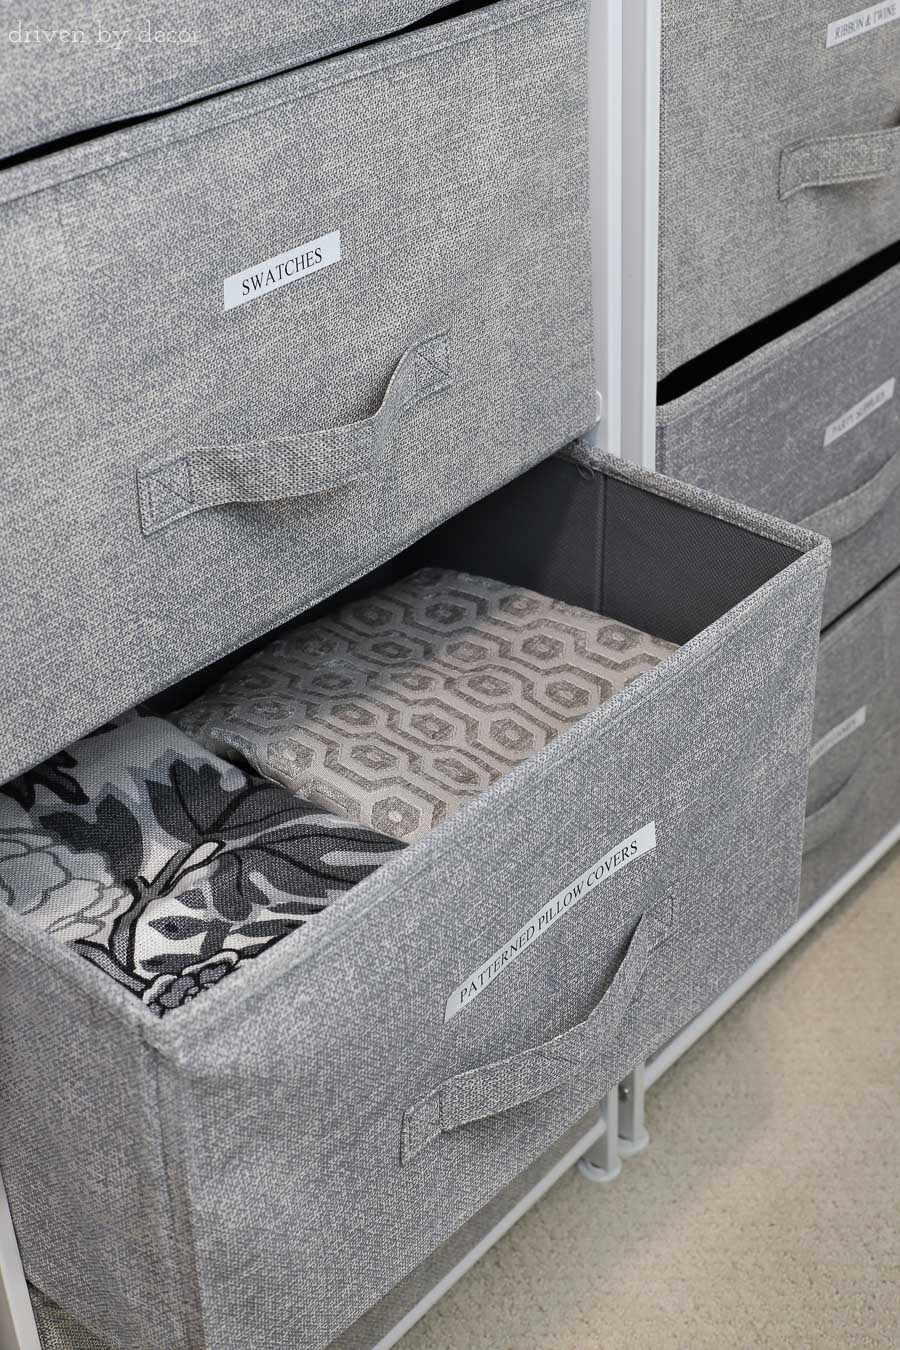 Great post filled with closet organization ideas! Love these labeled storage drawers!